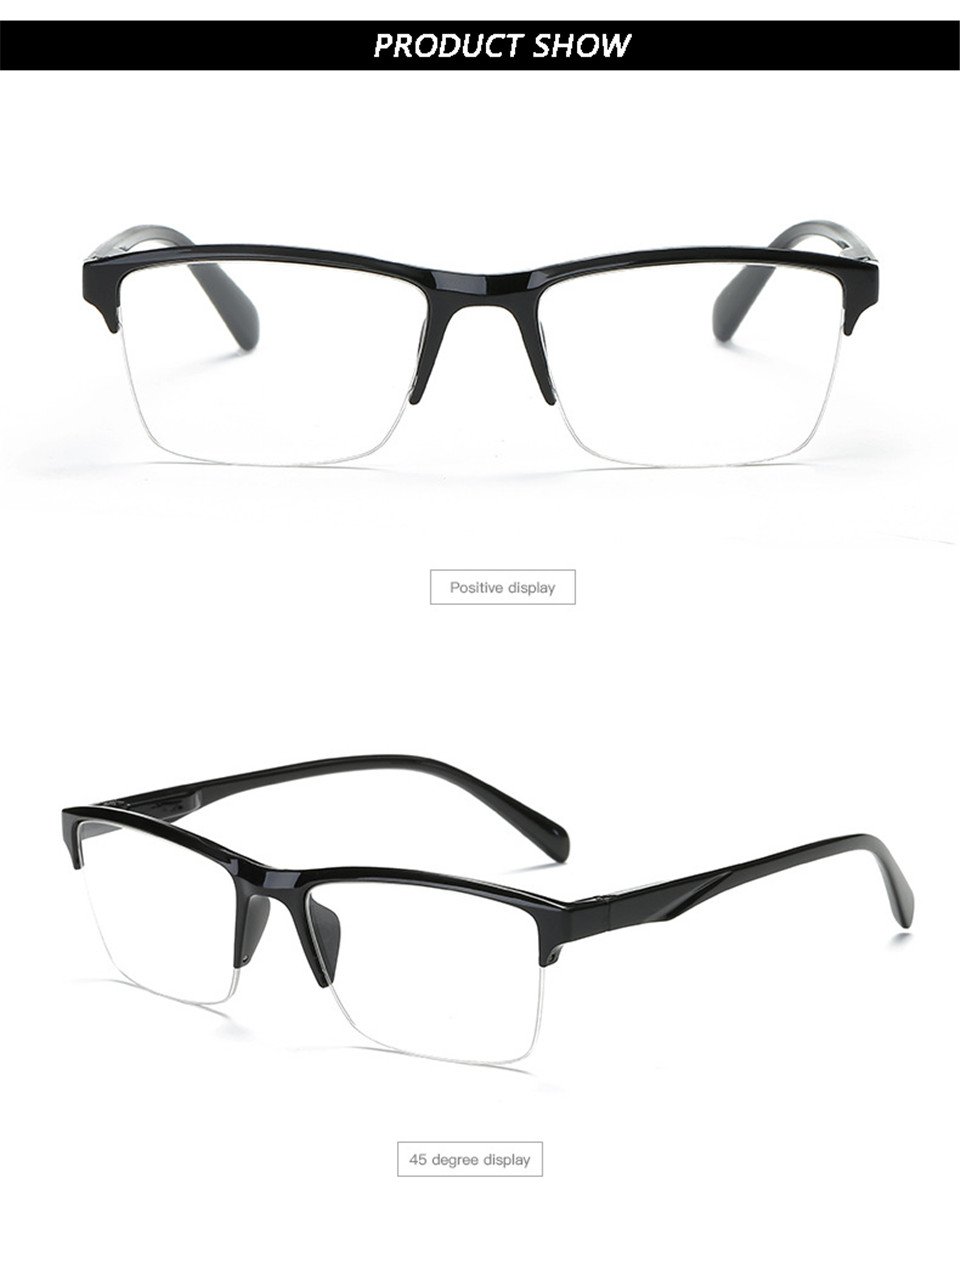 HTB1MxkAKSzqK1RjSZFjq6zlCFXaN - iboode Half Frame Reading Glasses Presbyopic Eyewear Male Female Far sight Glasses Ultra Light Black with strength +75 to +400